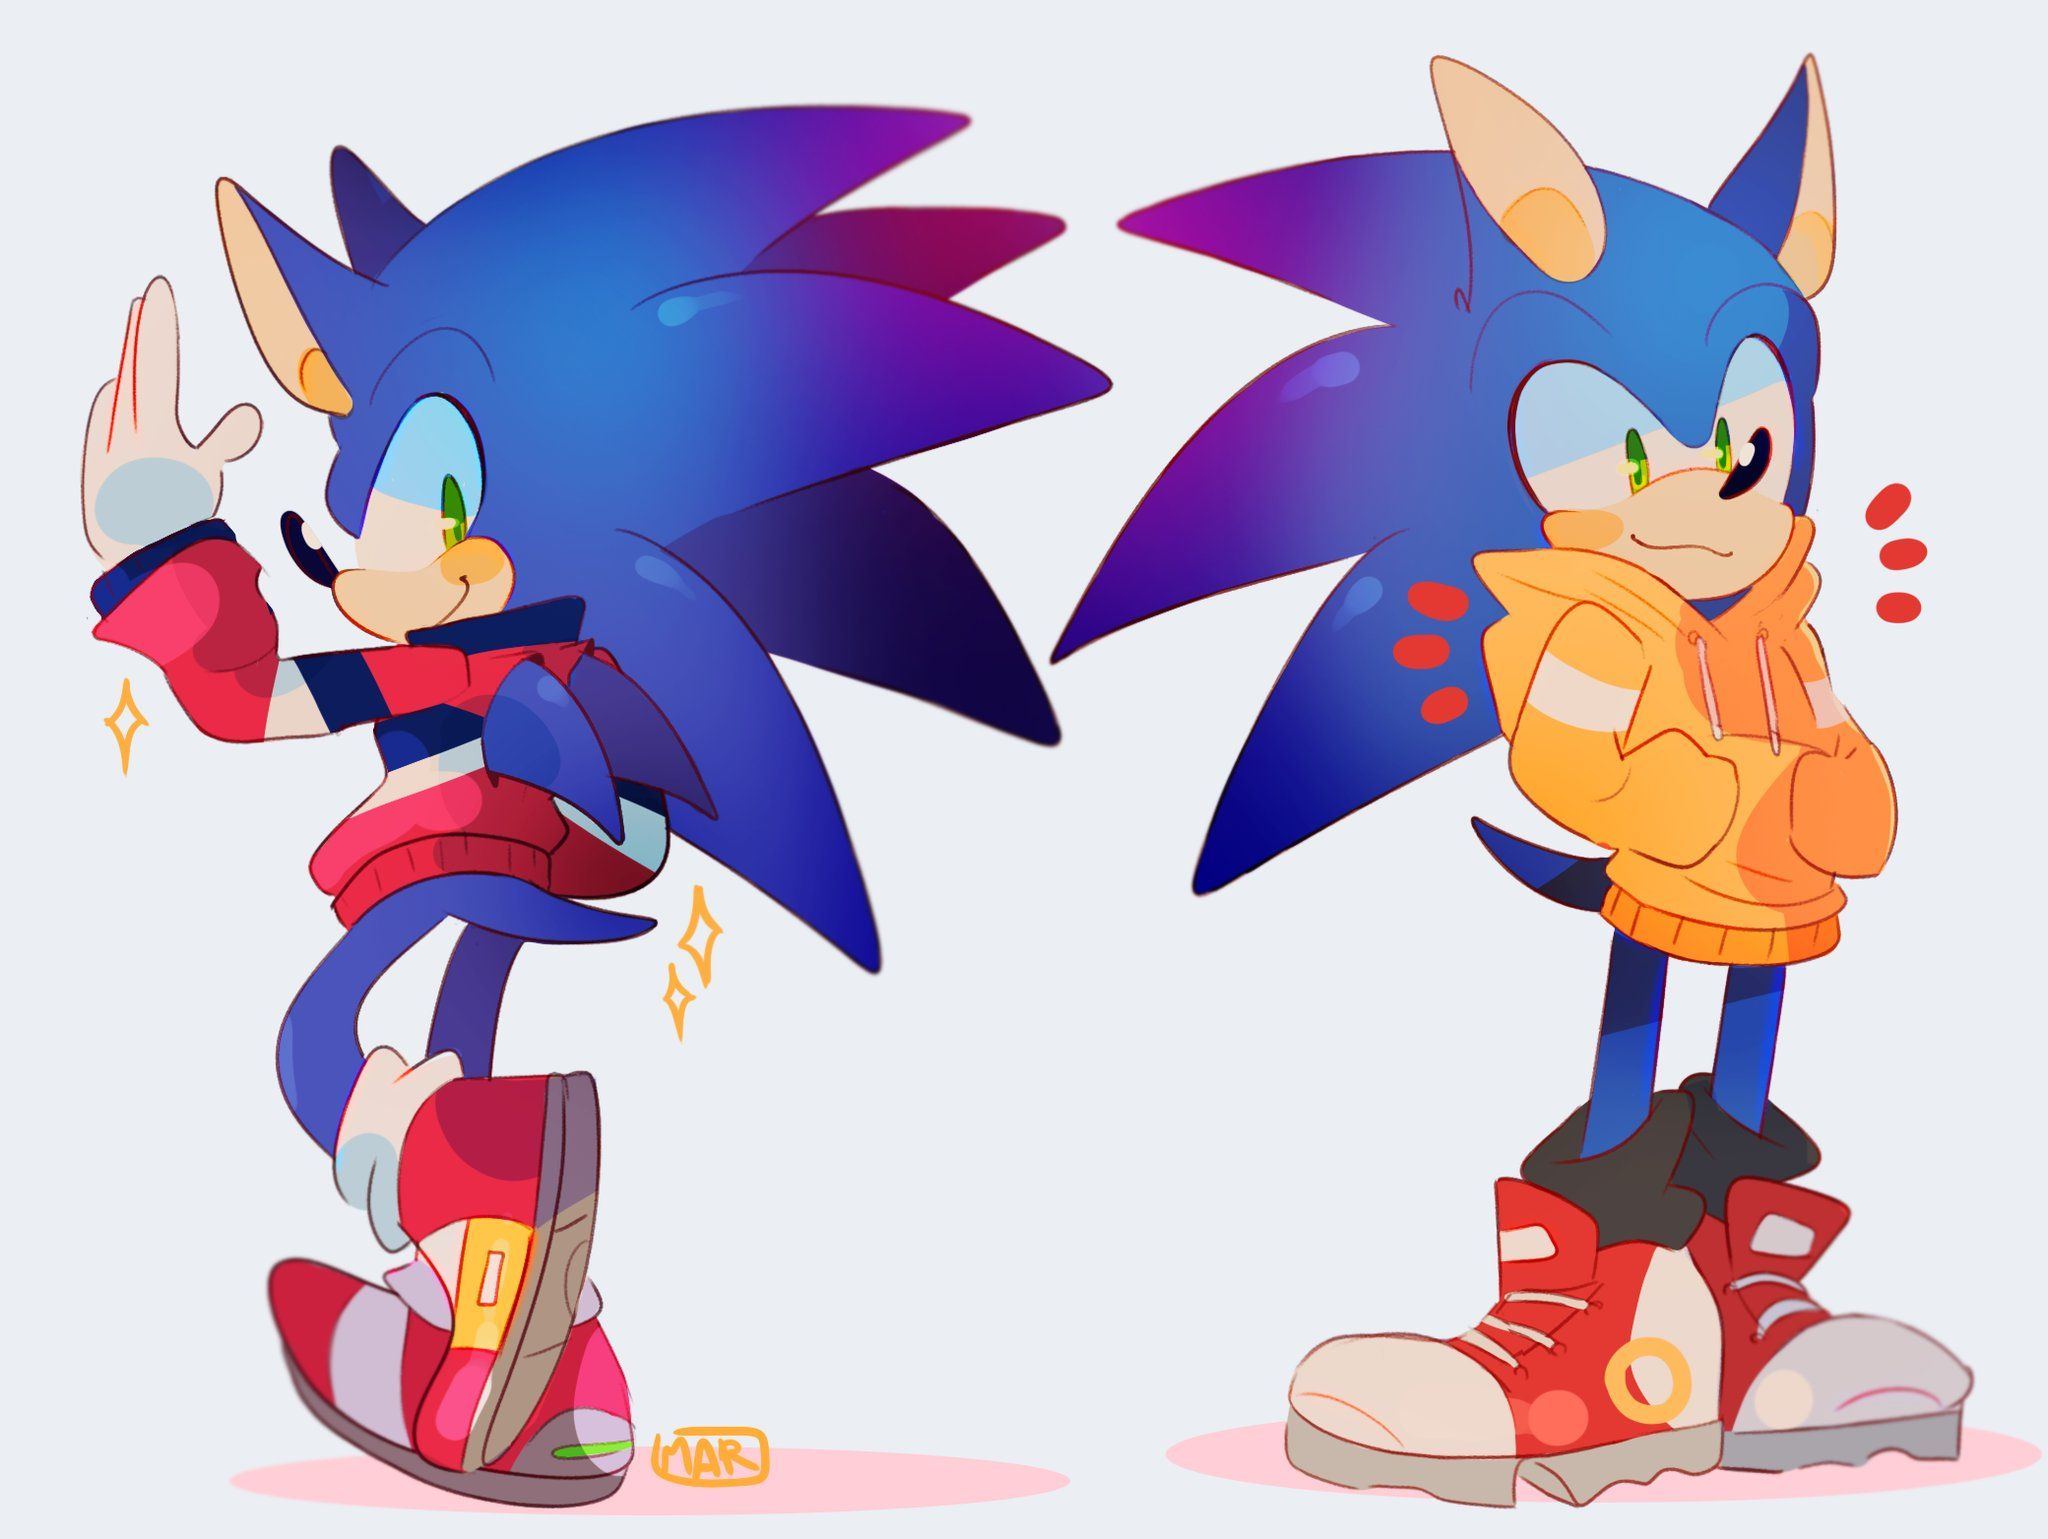 Mar On Twitter Sonic In Cool Jackets Is Always My Favorite Sonic Sonic And Shadow Sonic The Hedgehog